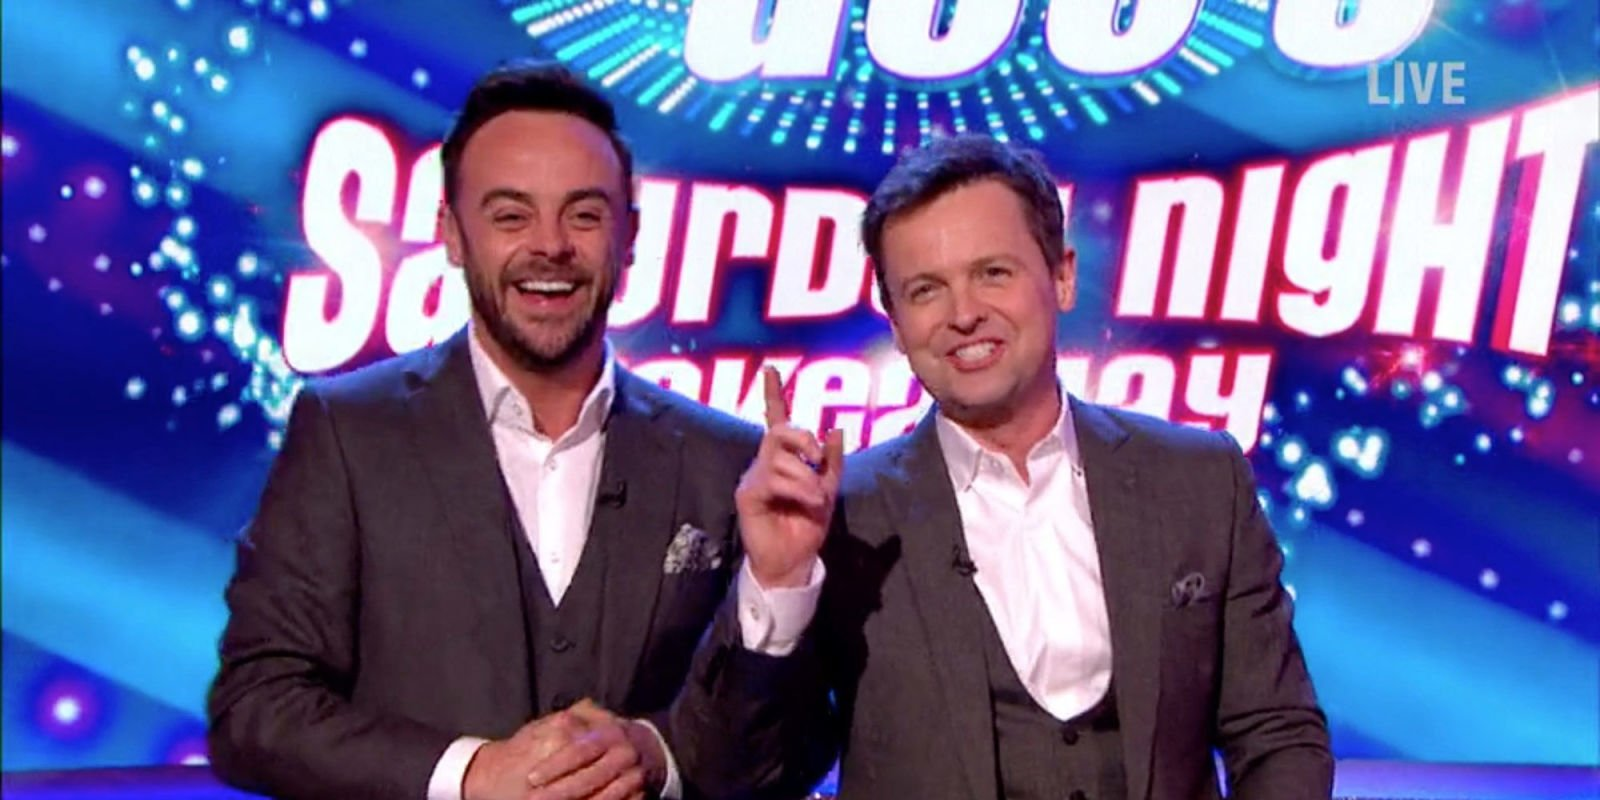 The Voice UK takes over Ant & Dec's Saturday Night Takeaway timeslot this week after it's pulled by ITV